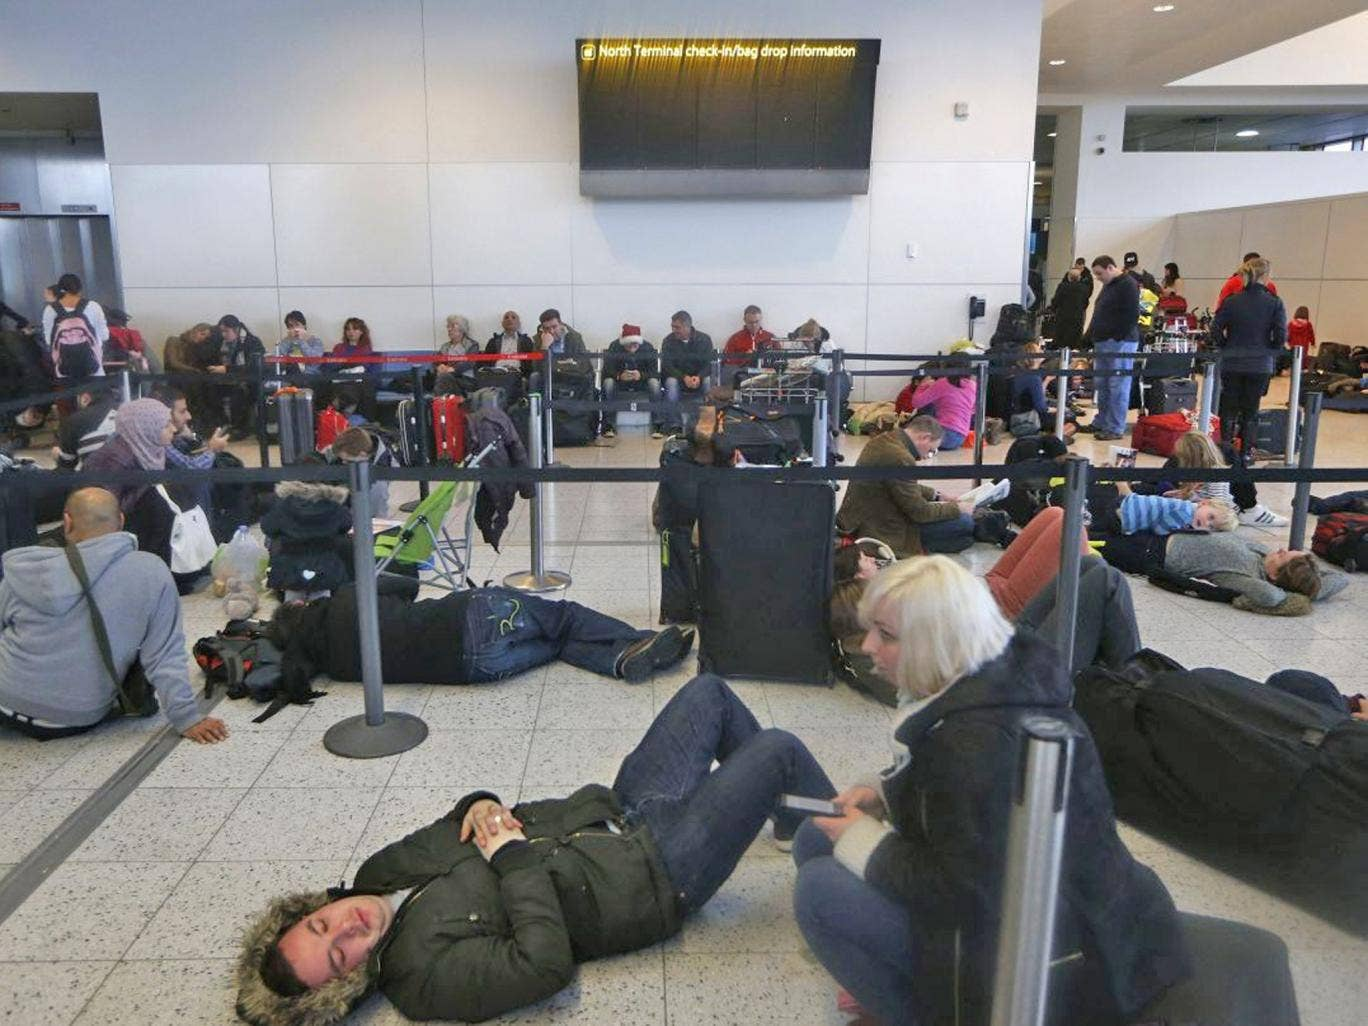 Many flights were cancelled at Gatwick after a power outage caused by flooding